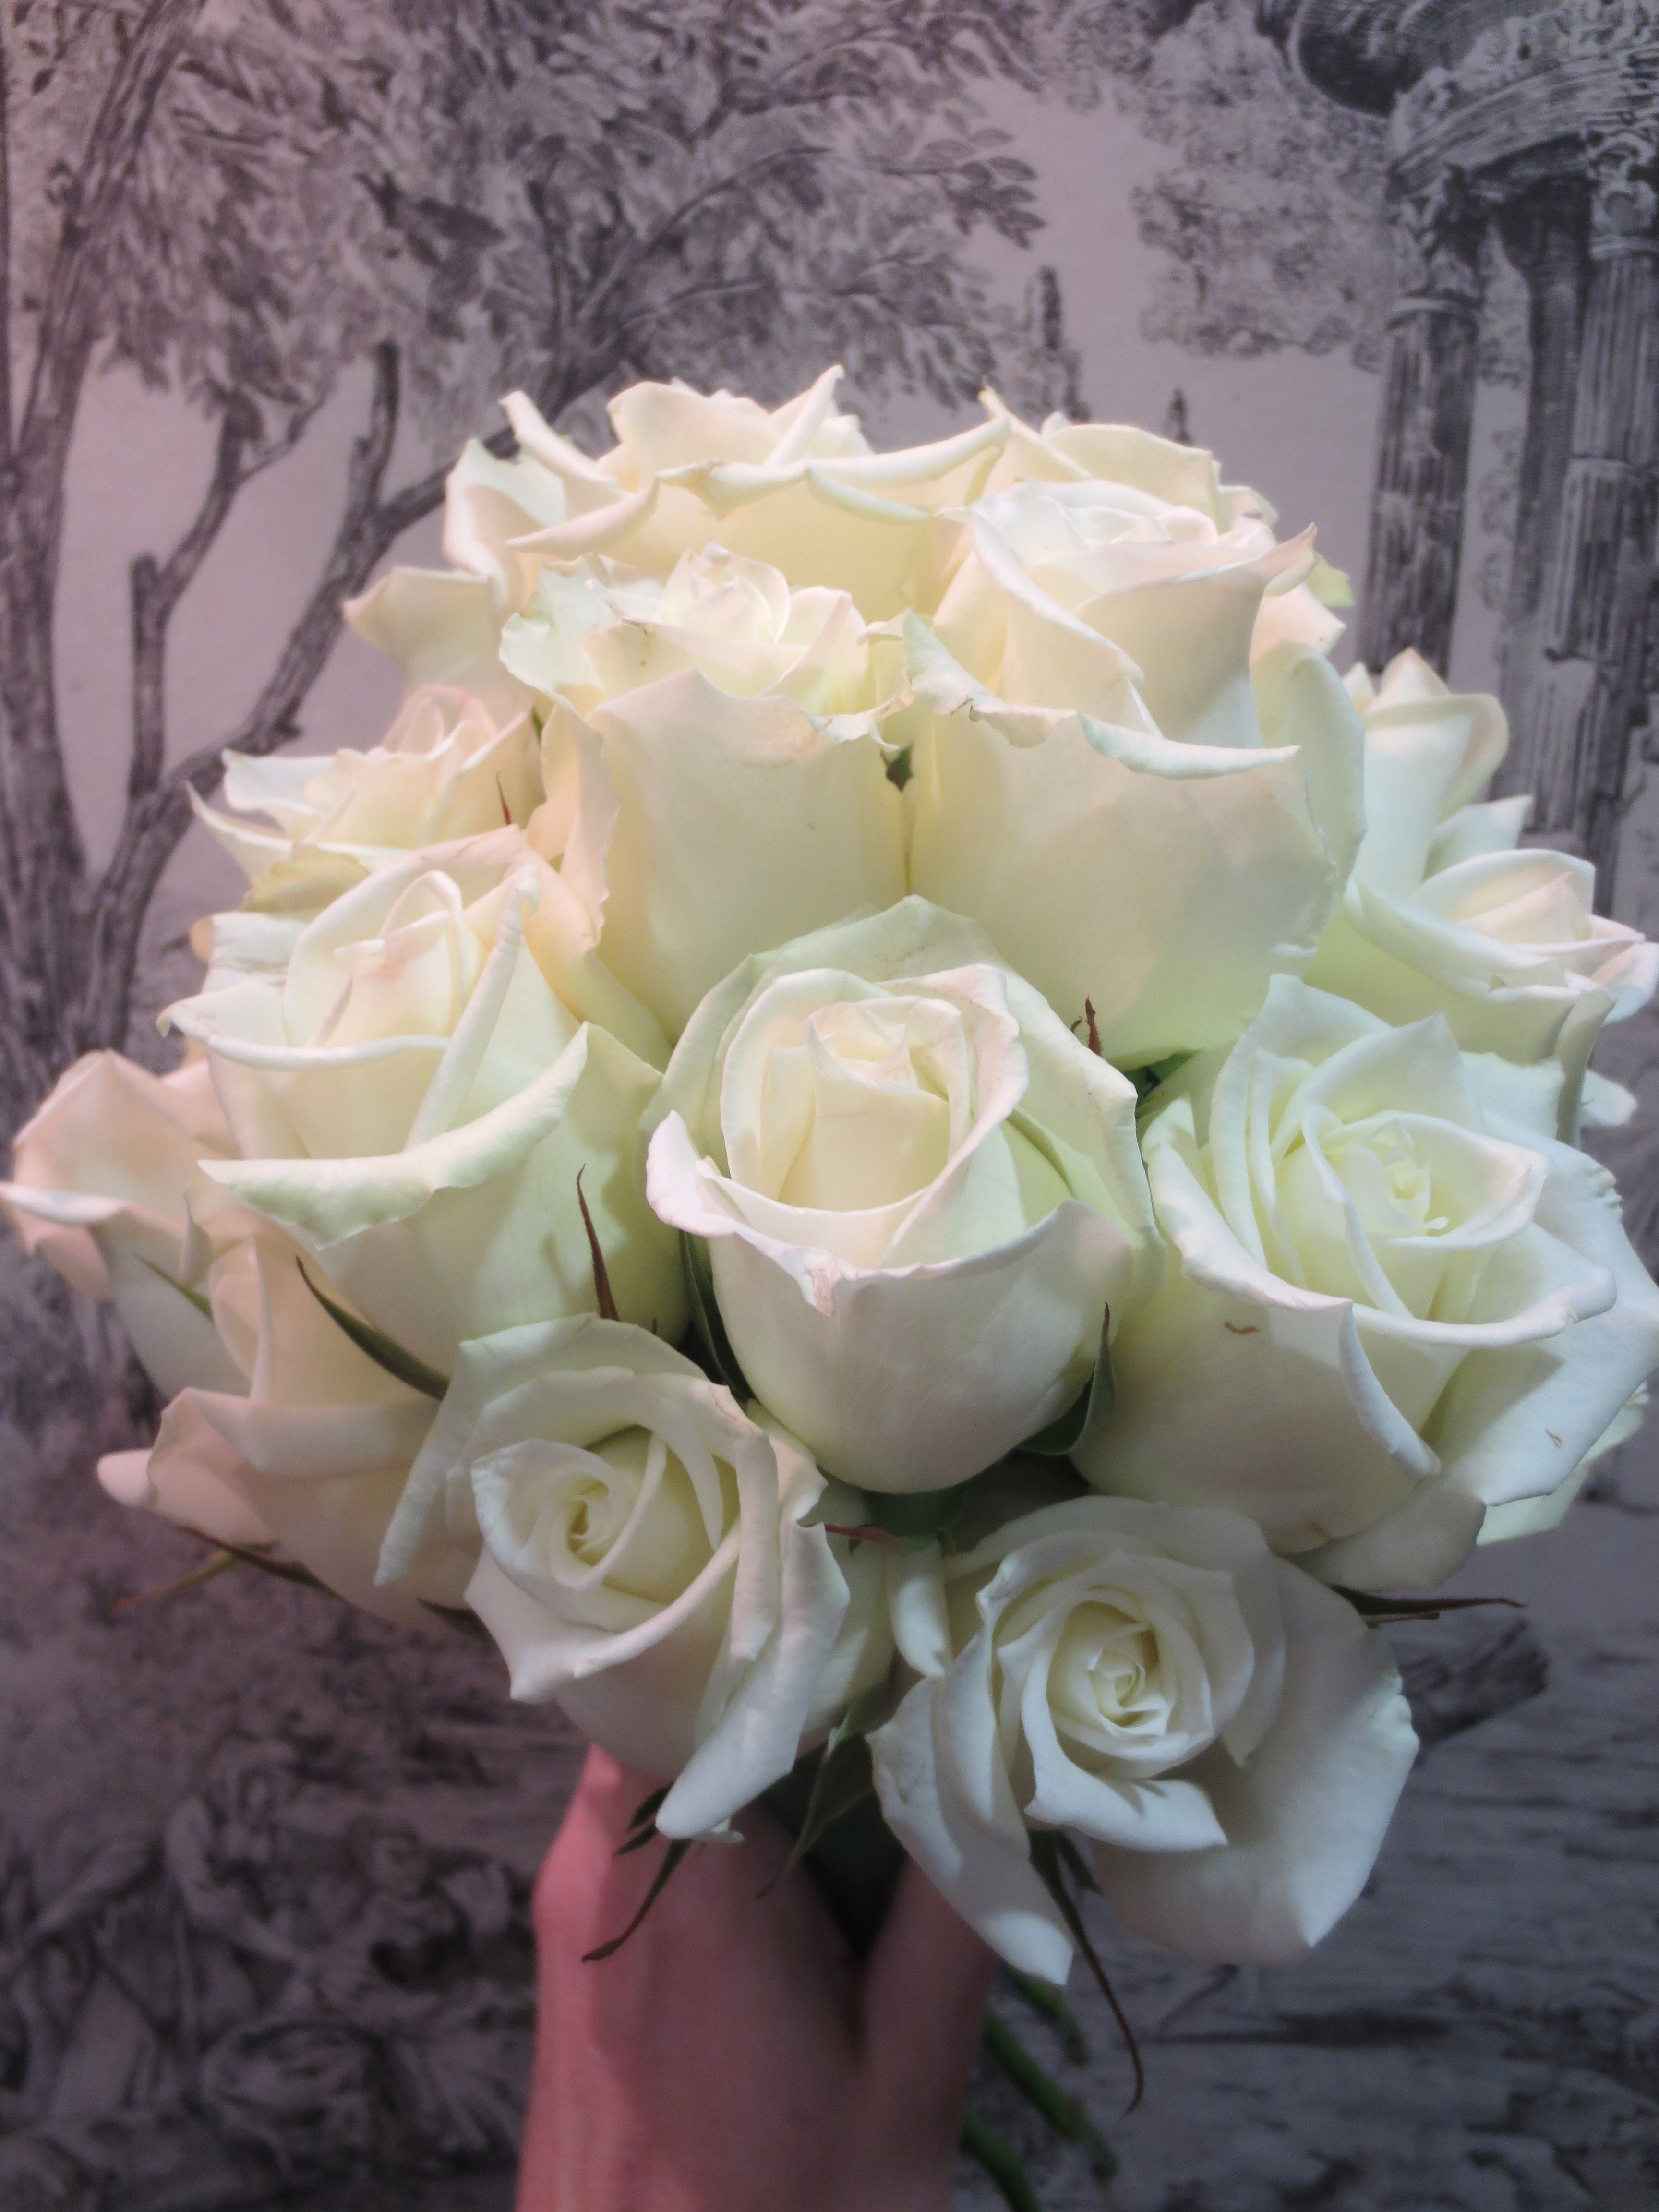 Domed white rose bridesmaid bouquet wedding flowers